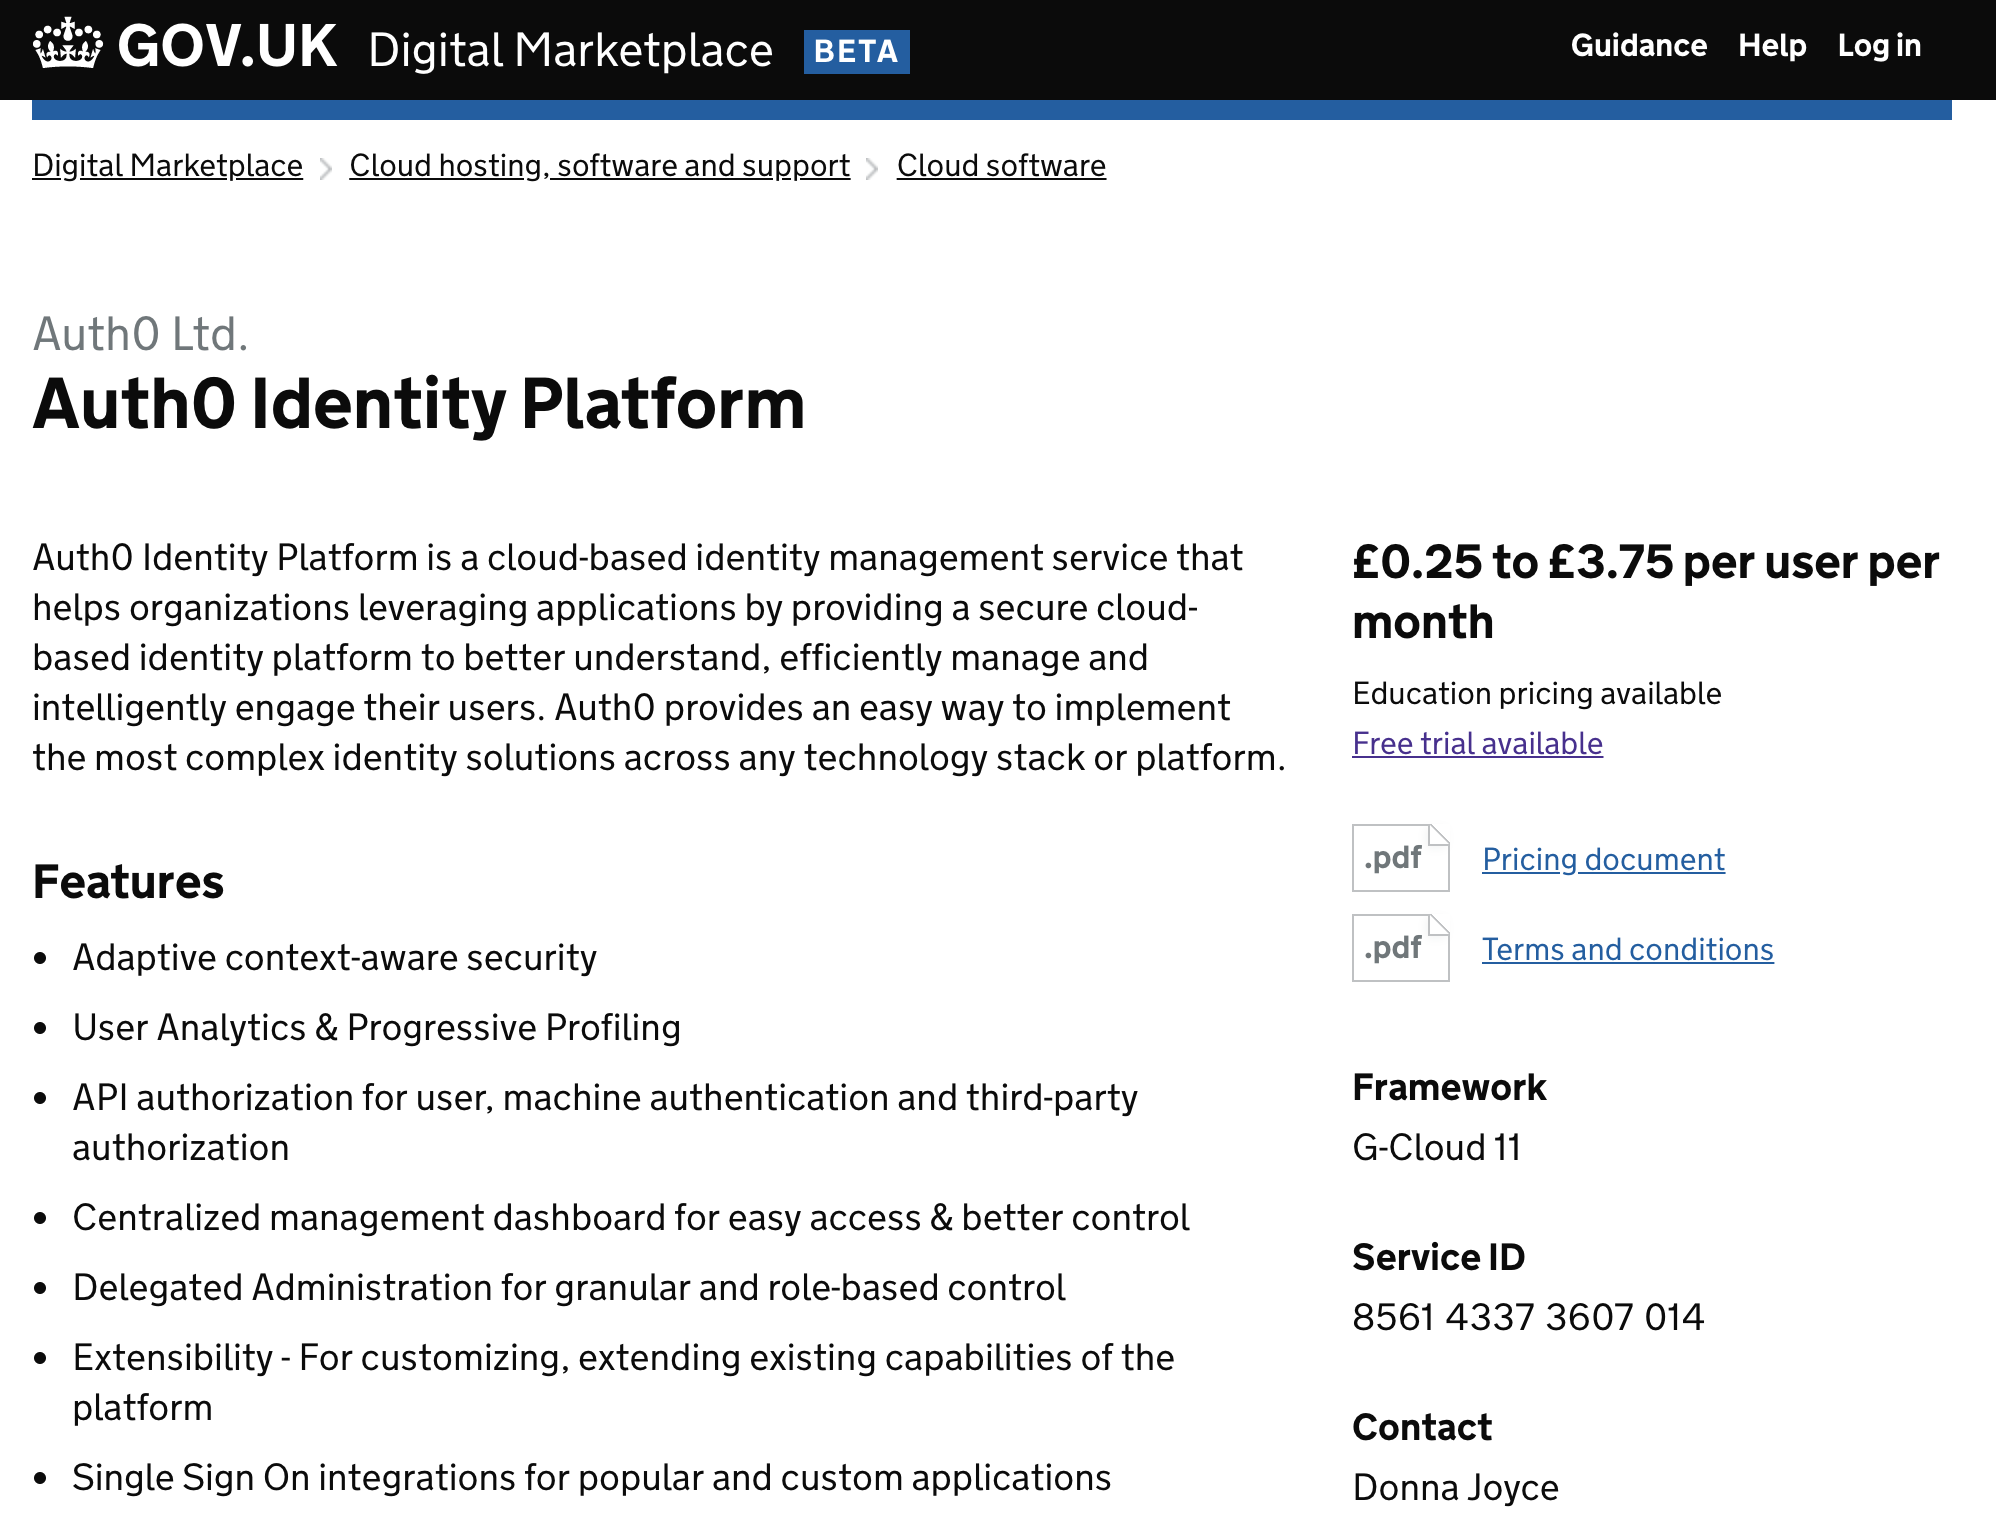 Auth0 listed in UK gov.uk site Digital Marketplace